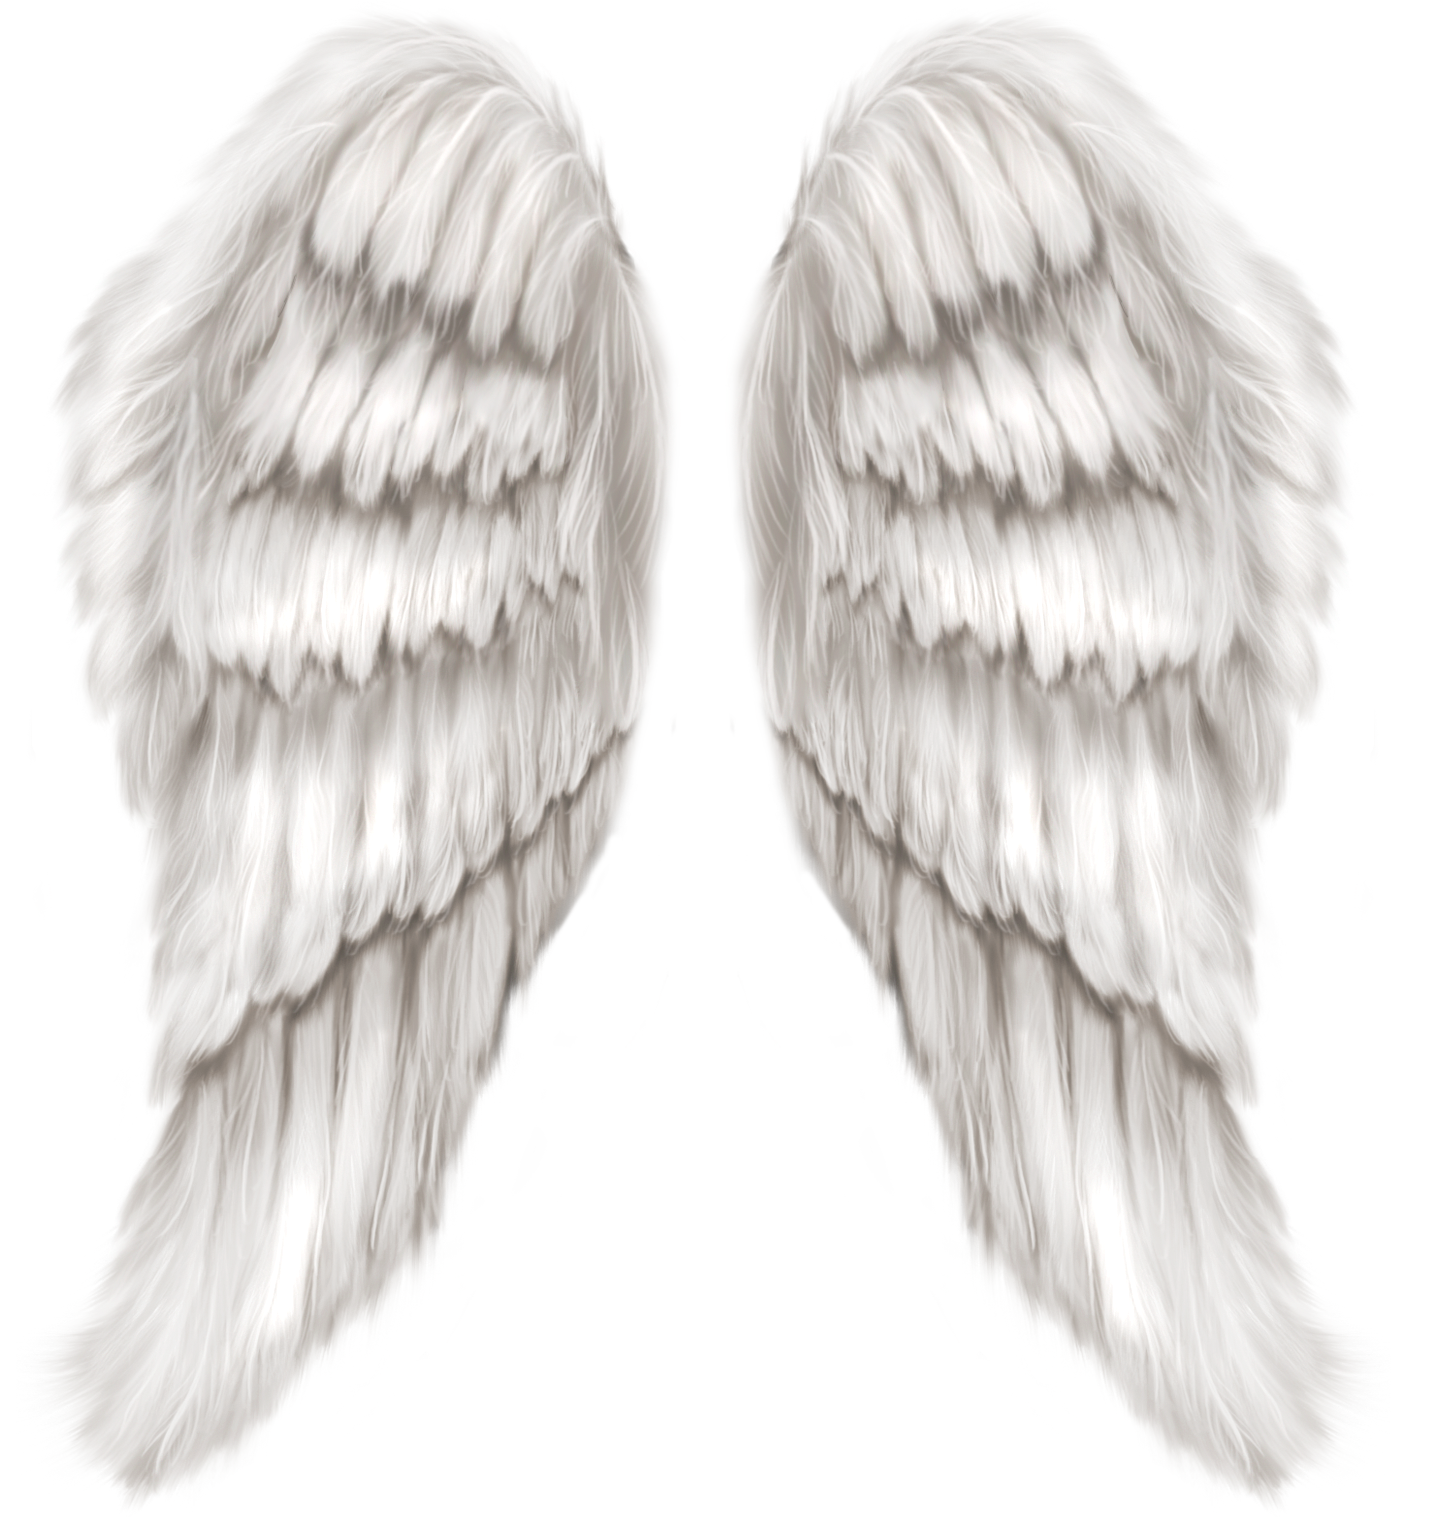 White Angel Wings Transparent PNG Clip Art Image | Gallery ...